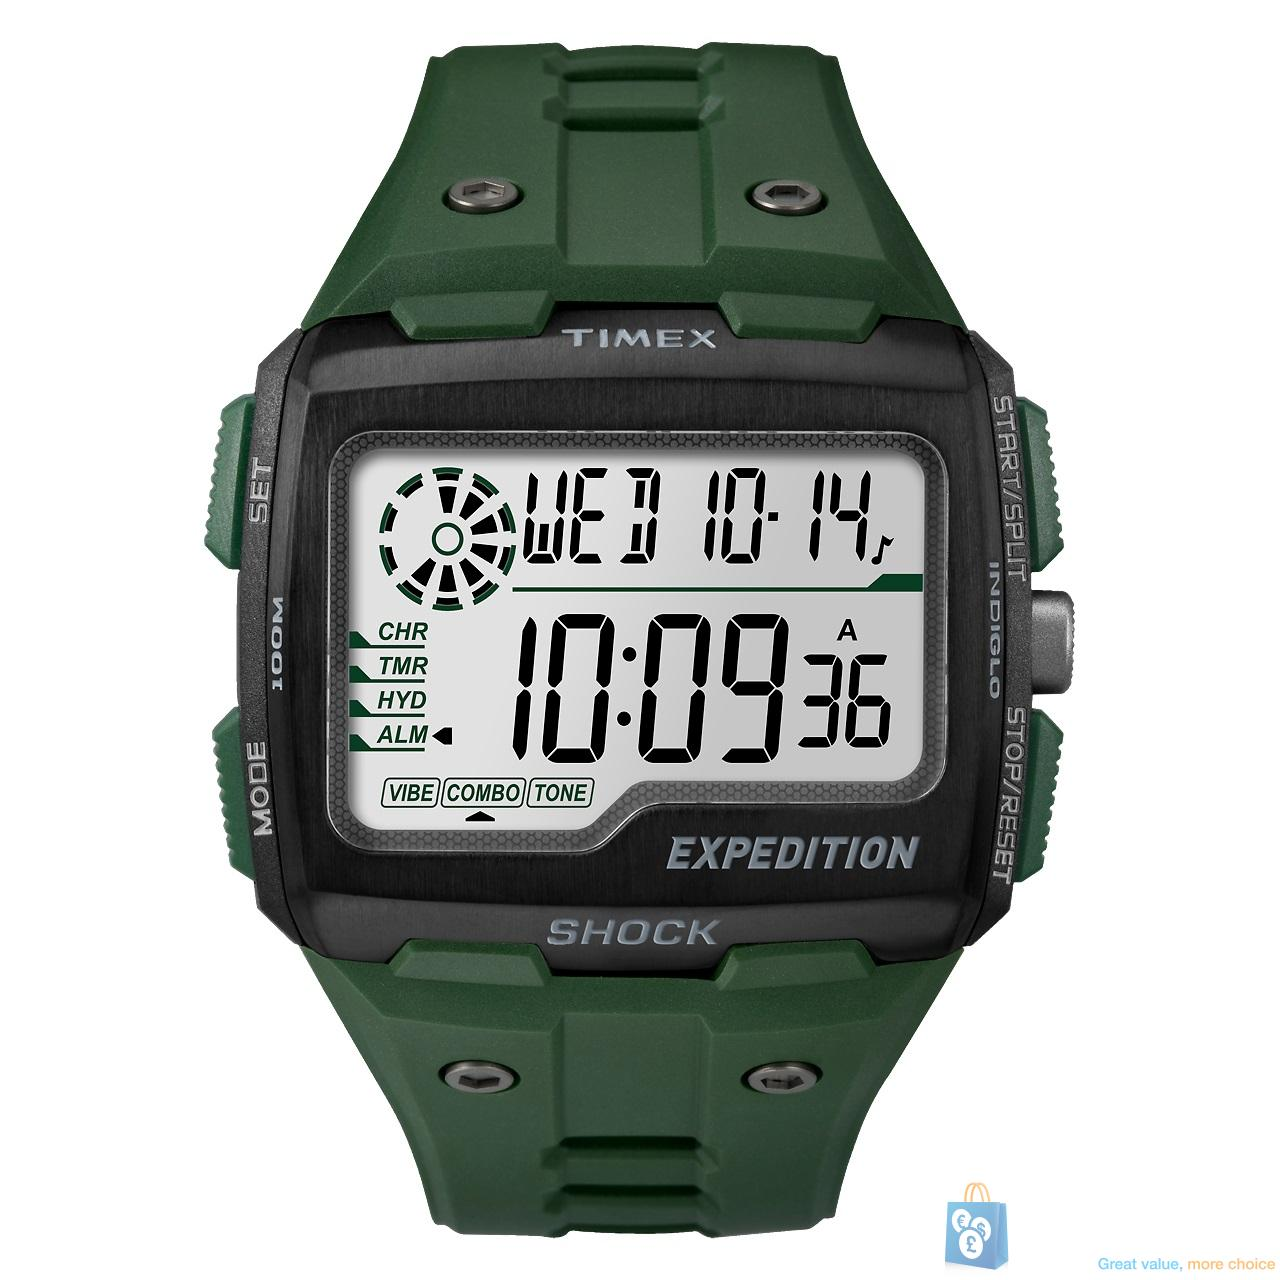 timex expedition grid shock tw4b02600 men 039 s green digital click on the image below to get zoomed view of the item timex expedition grid shock tw4b02600 men s green digital sports watch